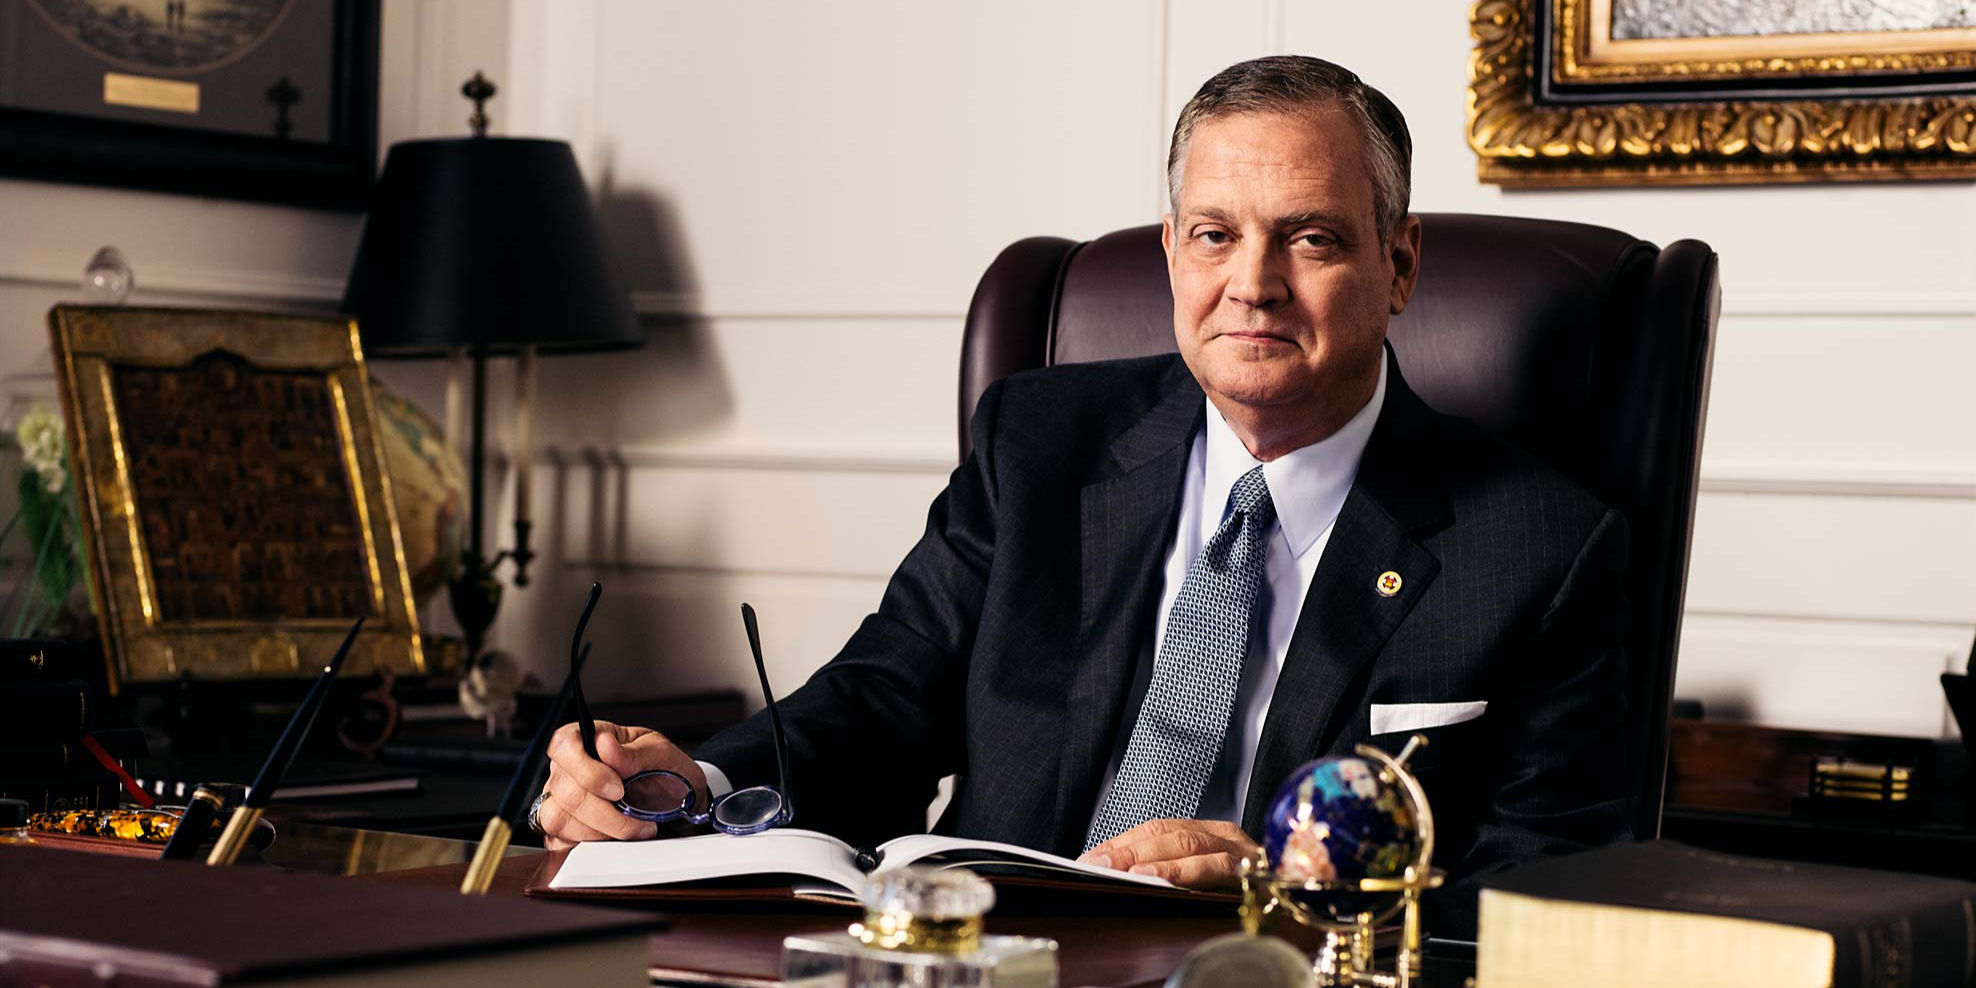 Al Mohler Warns Against Making 'Generalized Charges of Voter Fraud', Says Allegations Without 'Serious Credible Concern' Are 'Dangerous to America as a Nation'